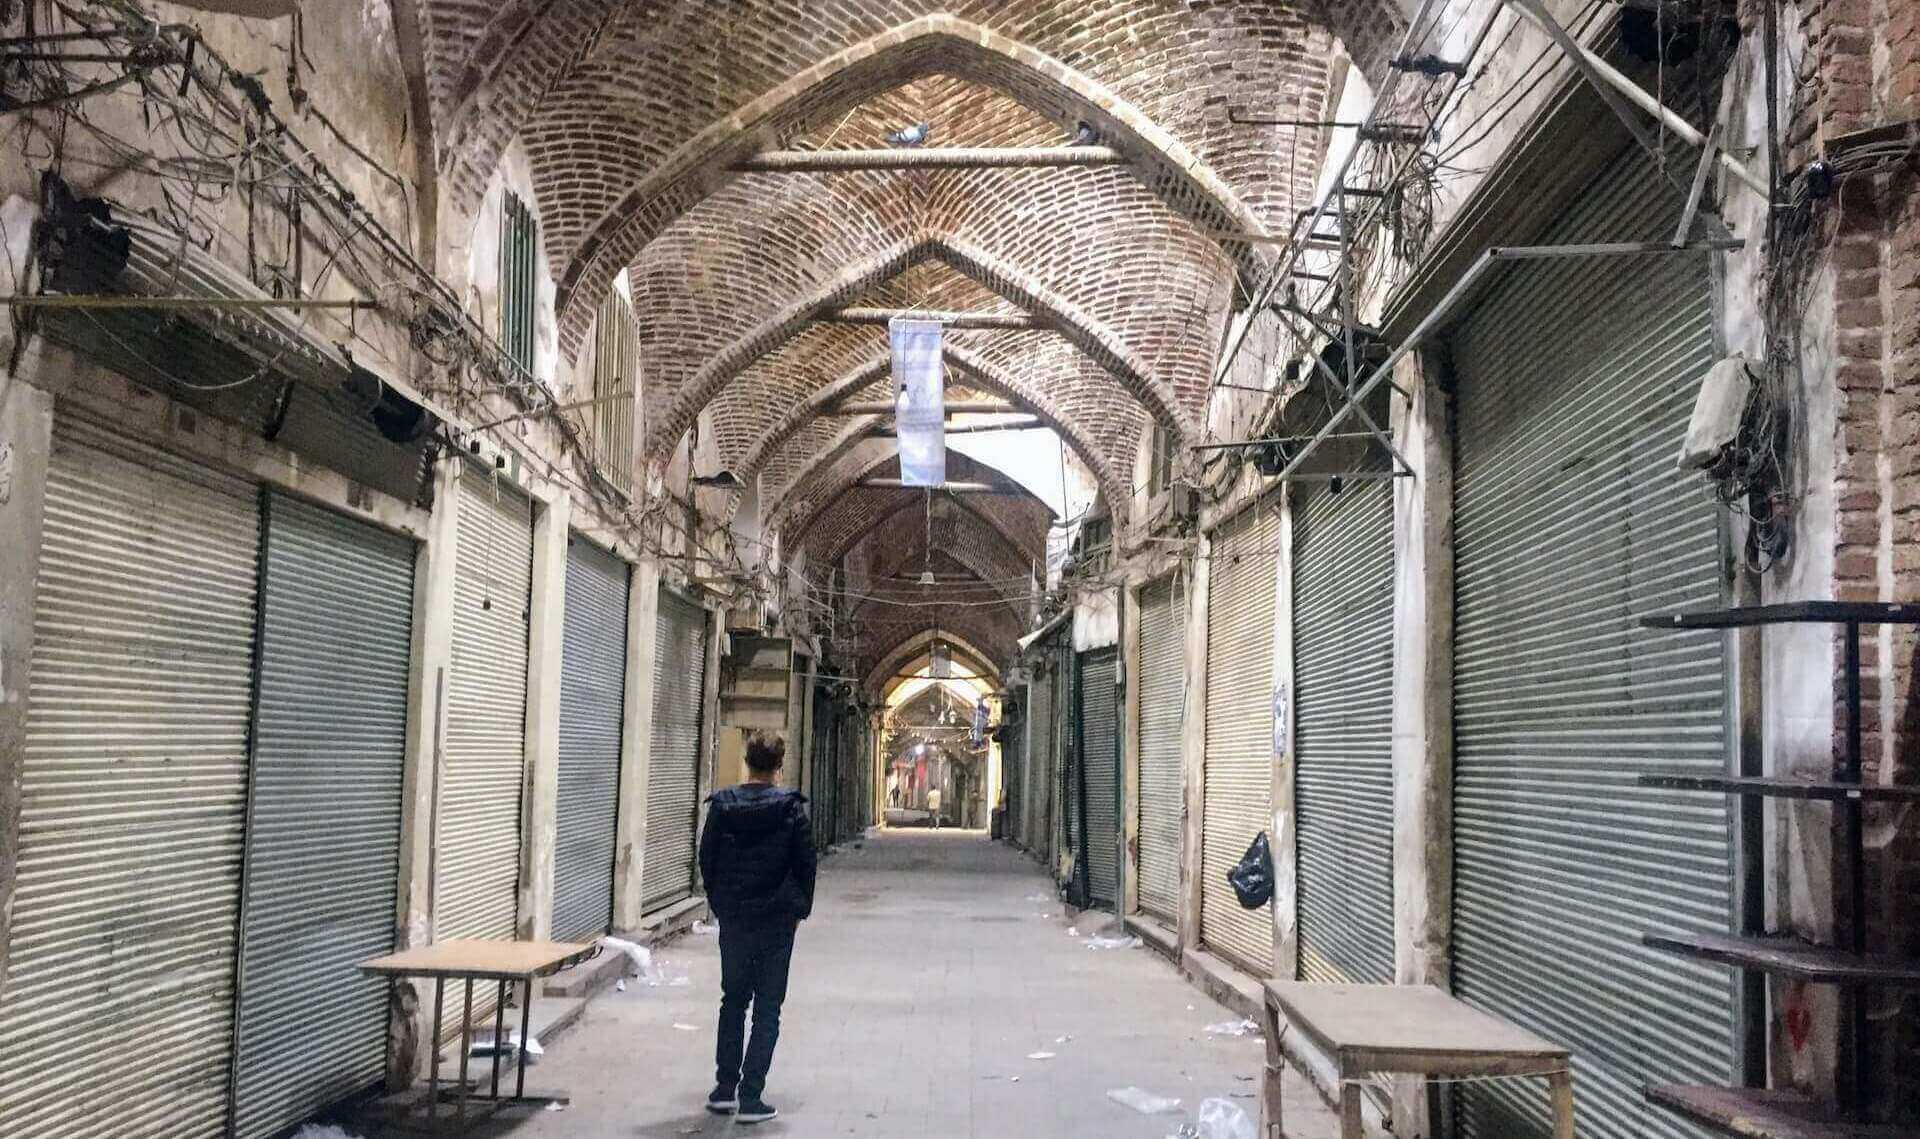 Eenzame backpacker in de verlaten Bazaar van Tabriz in Iran